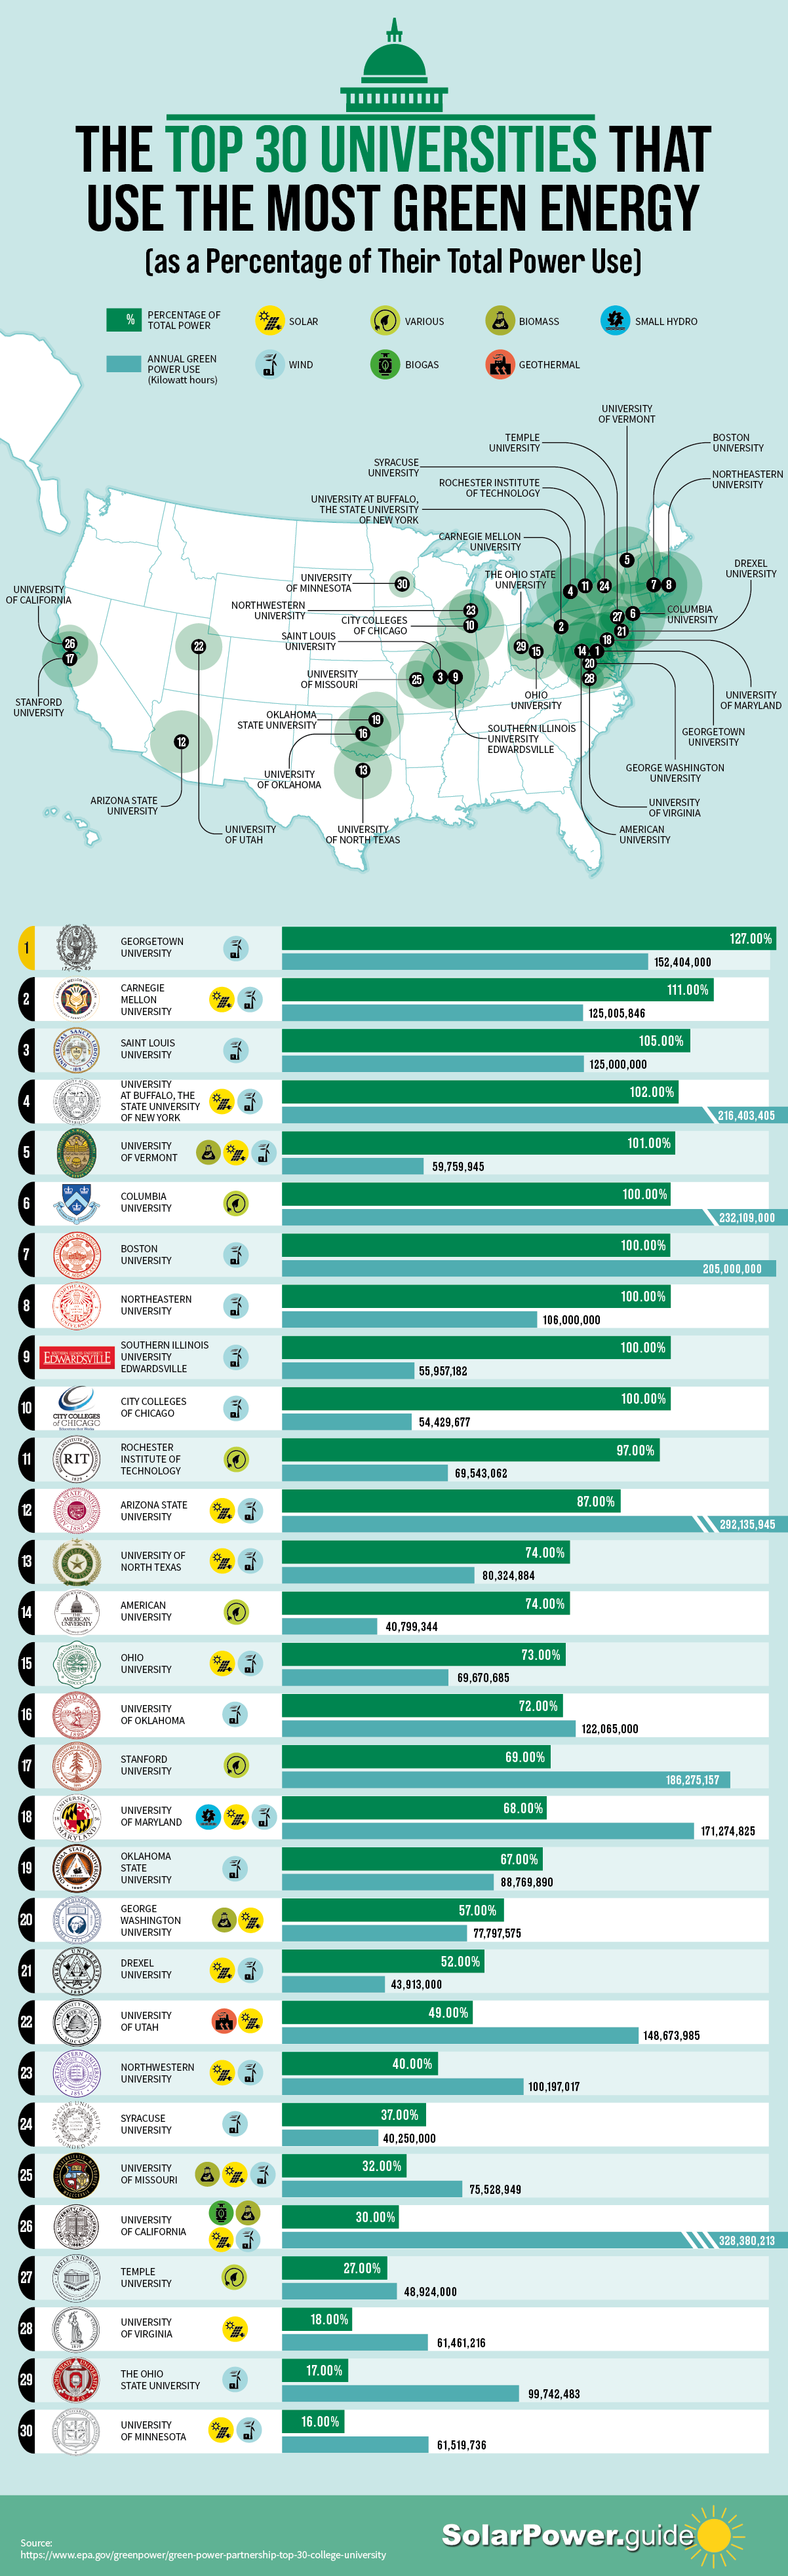 The Top 30 Local Government Entities That Use the Most Green Energy - Solar Power Guide - Infographic